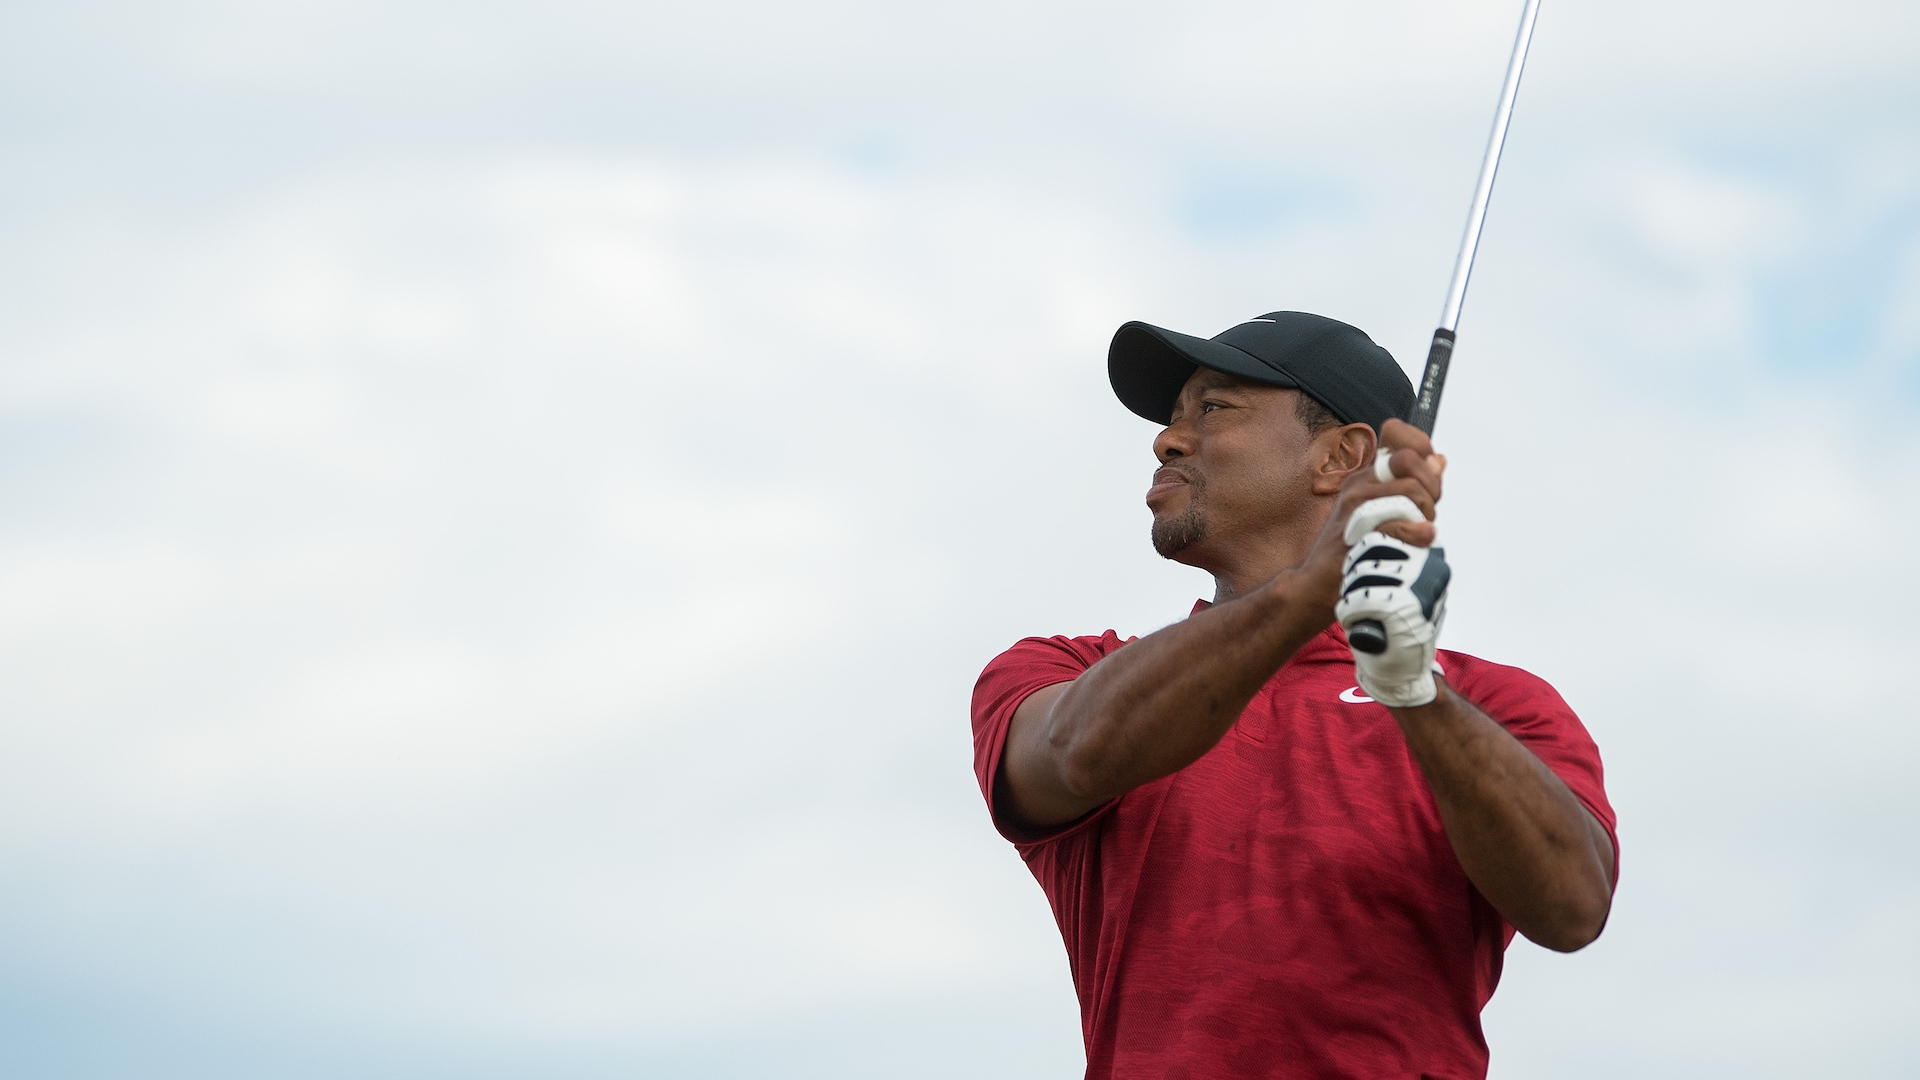 golf-posterframe-tiger-woods_91433_woods16_dp_iso_05_r